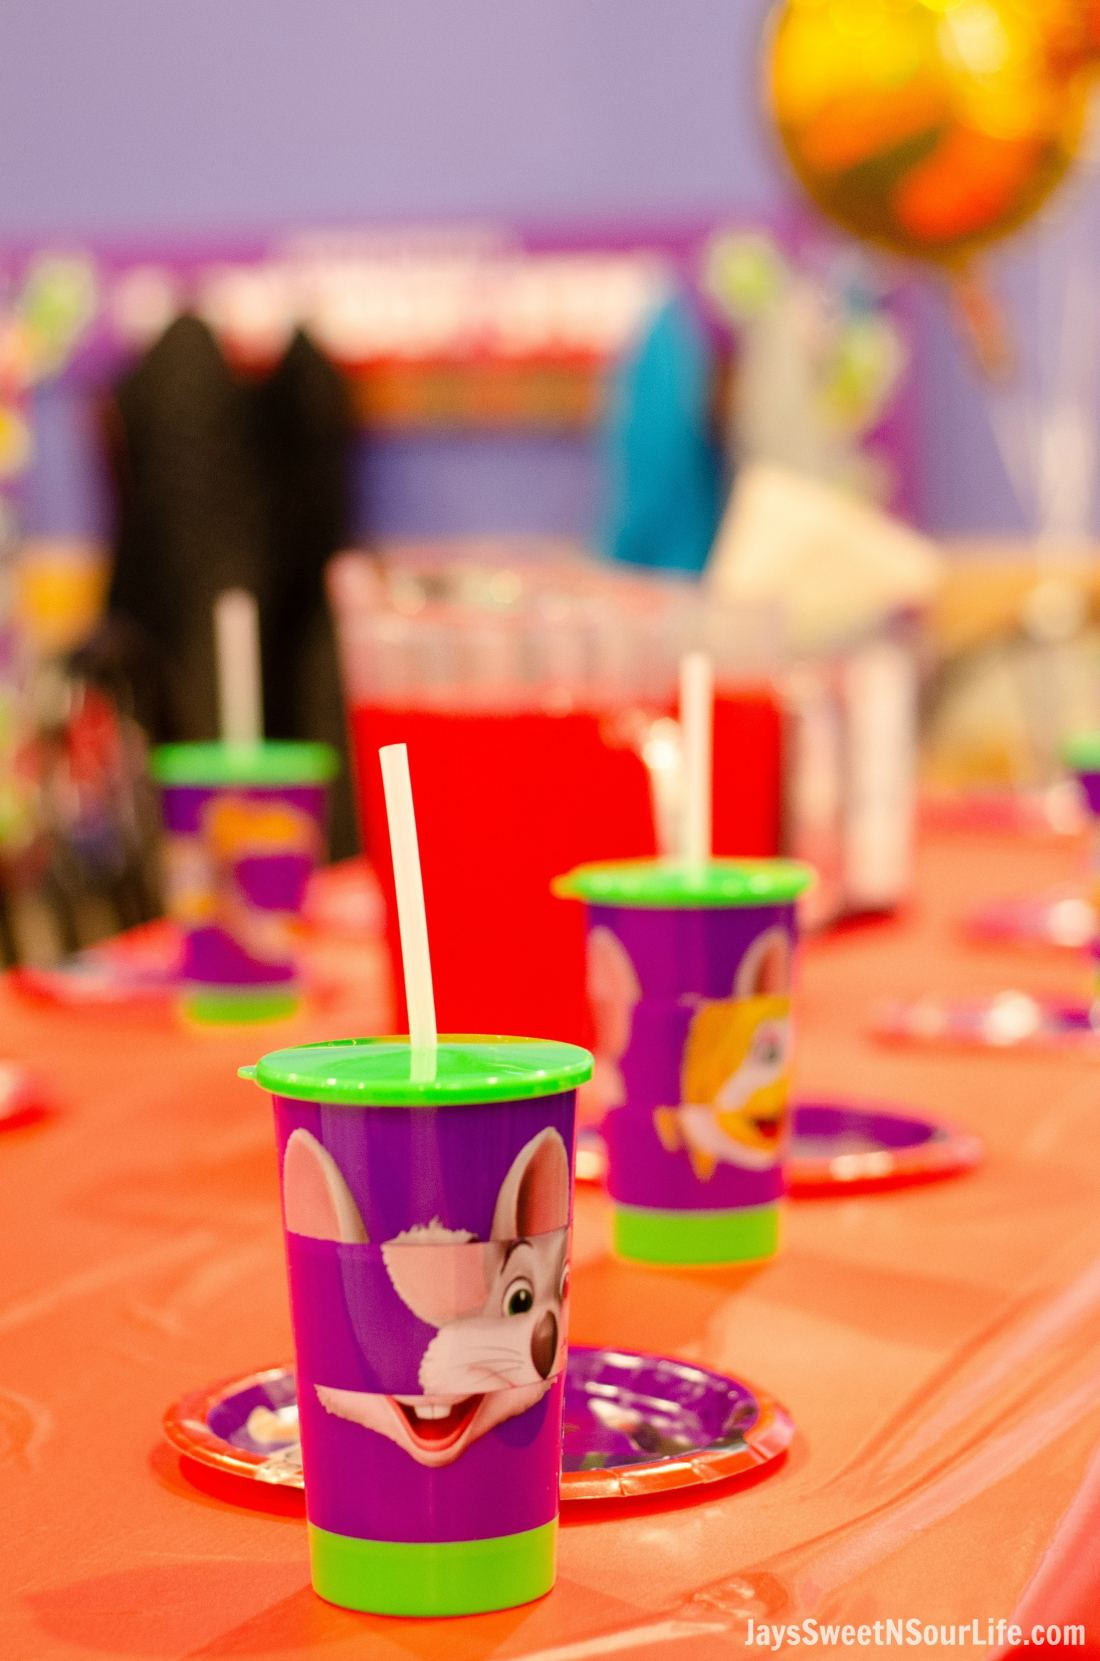 Recieve a Chuck e cheeses VIP birthday party Collectable Refillable Cup on party table. Book your party today and have guests enjoy 2 hours of unlimited game play.